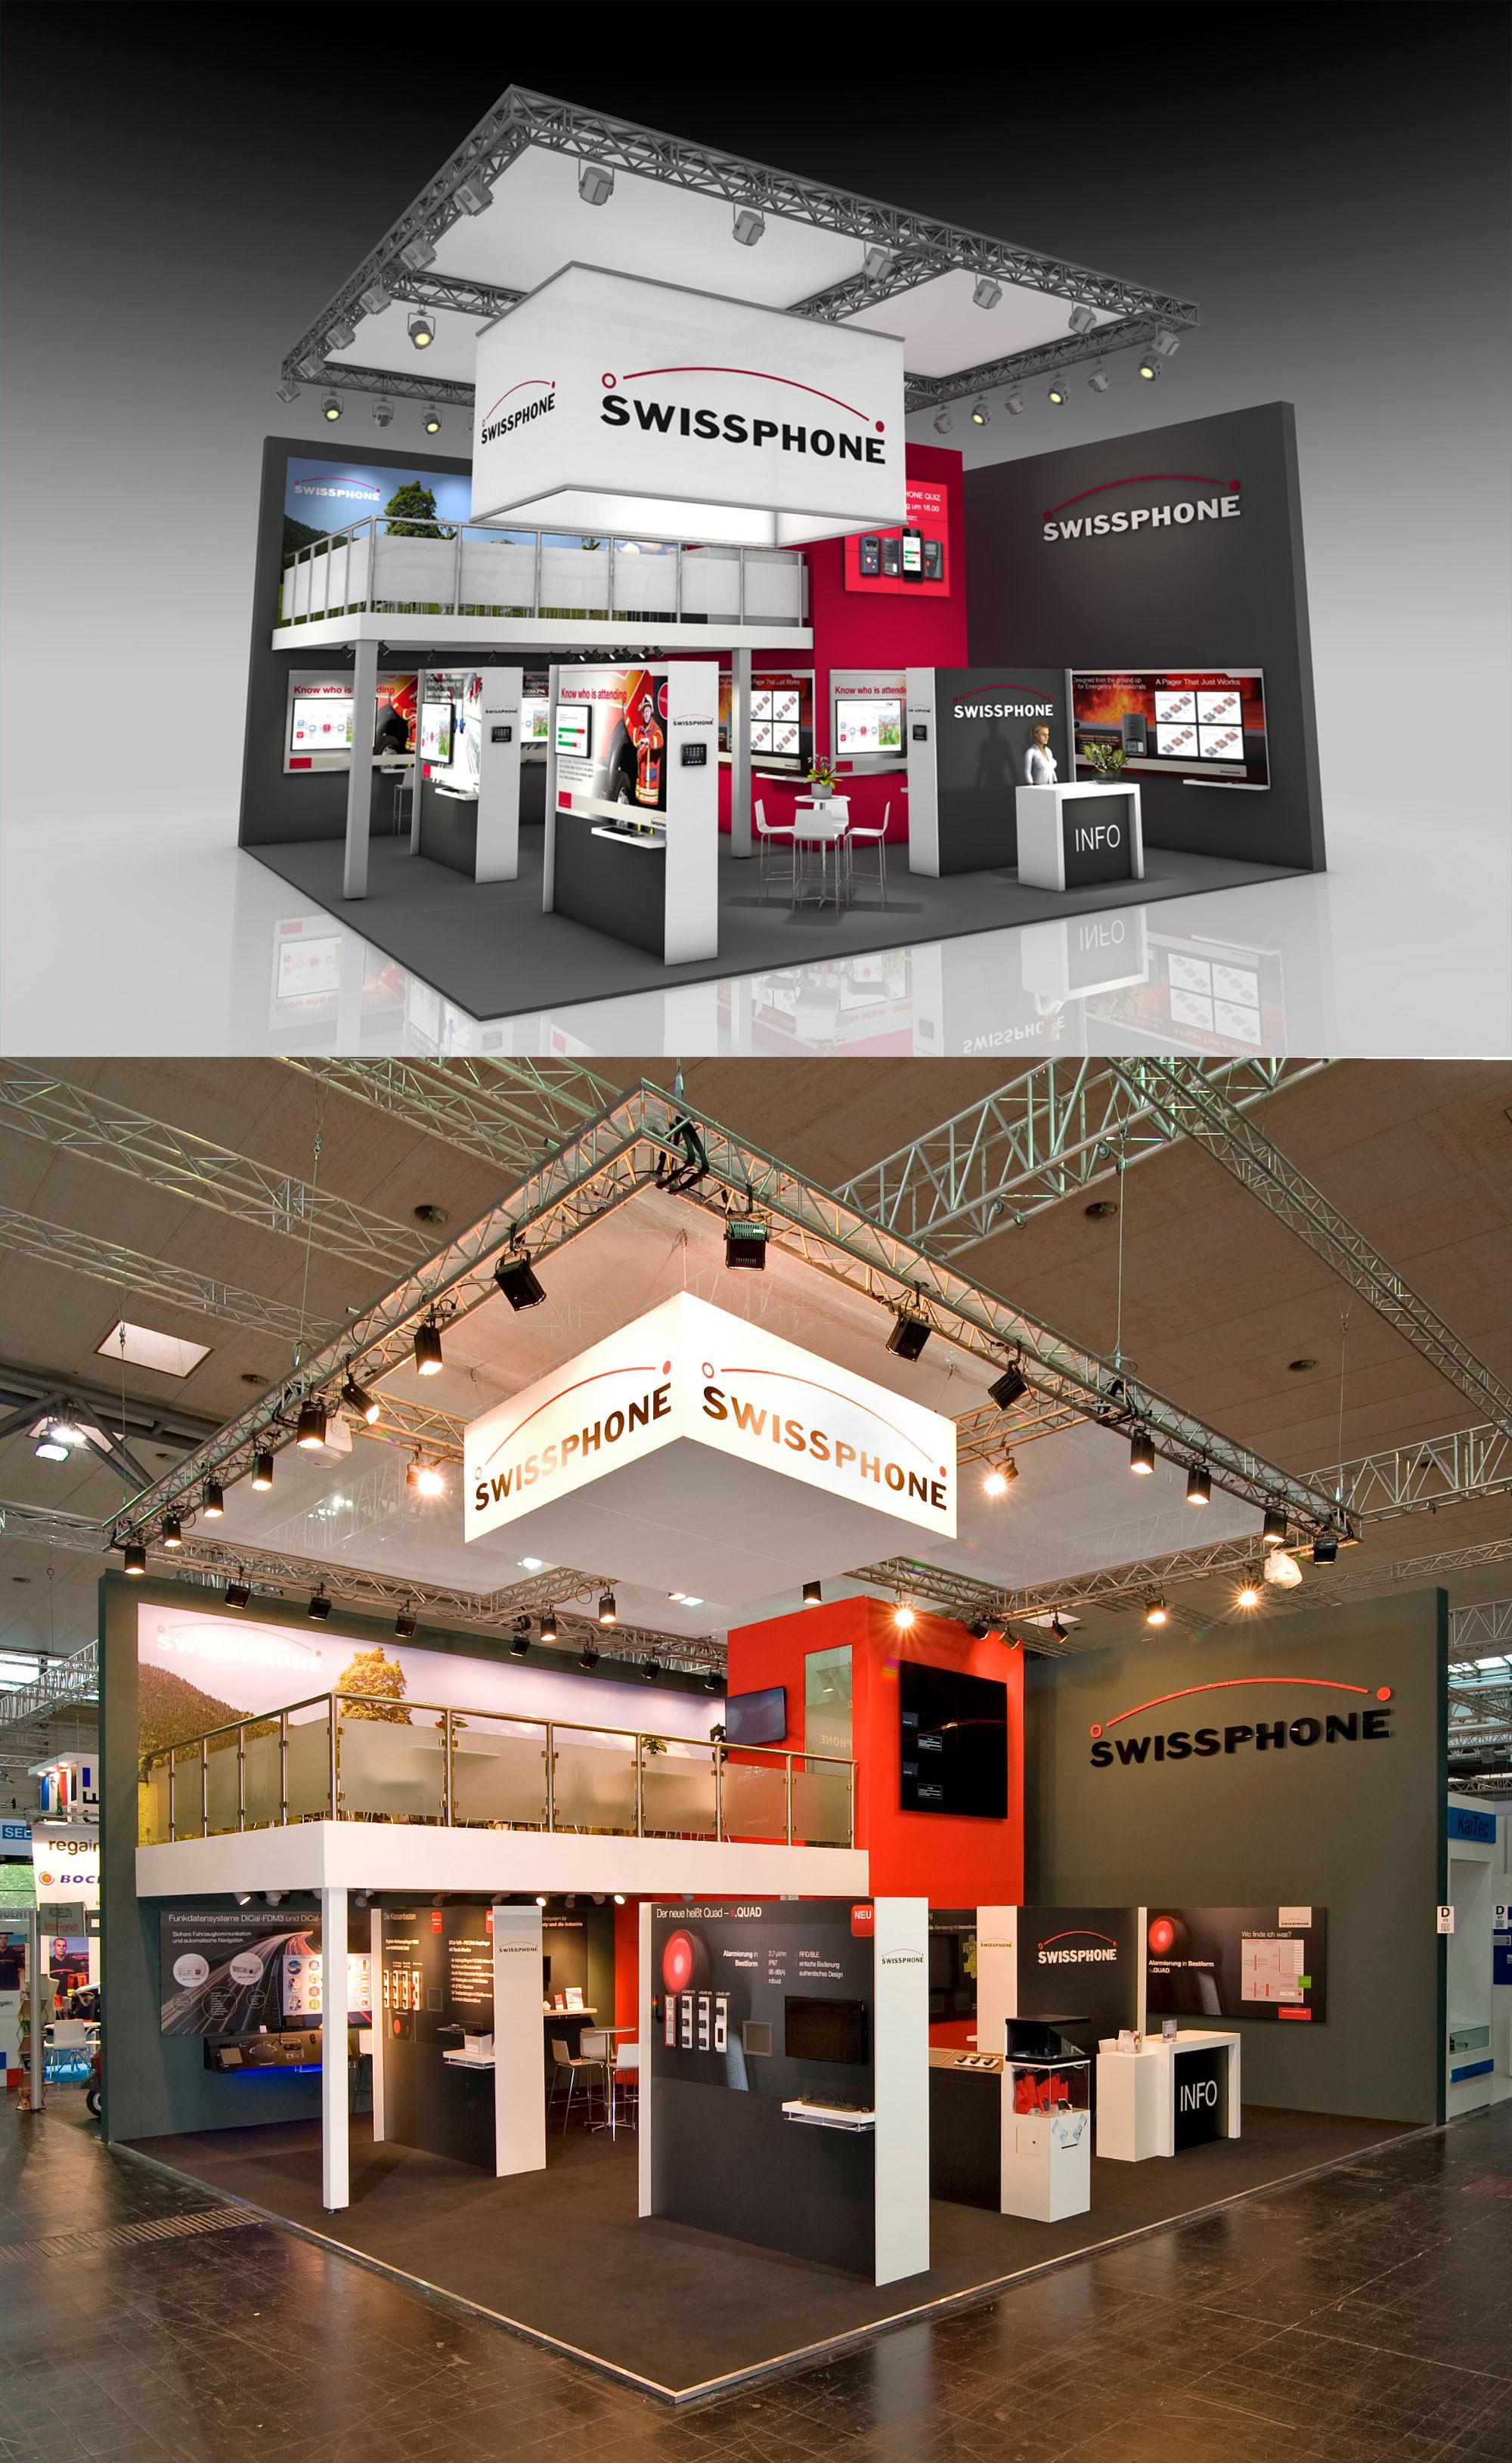 Exhibition Booth German : Expo rent germany expo cunsult customized booth stands u flickr